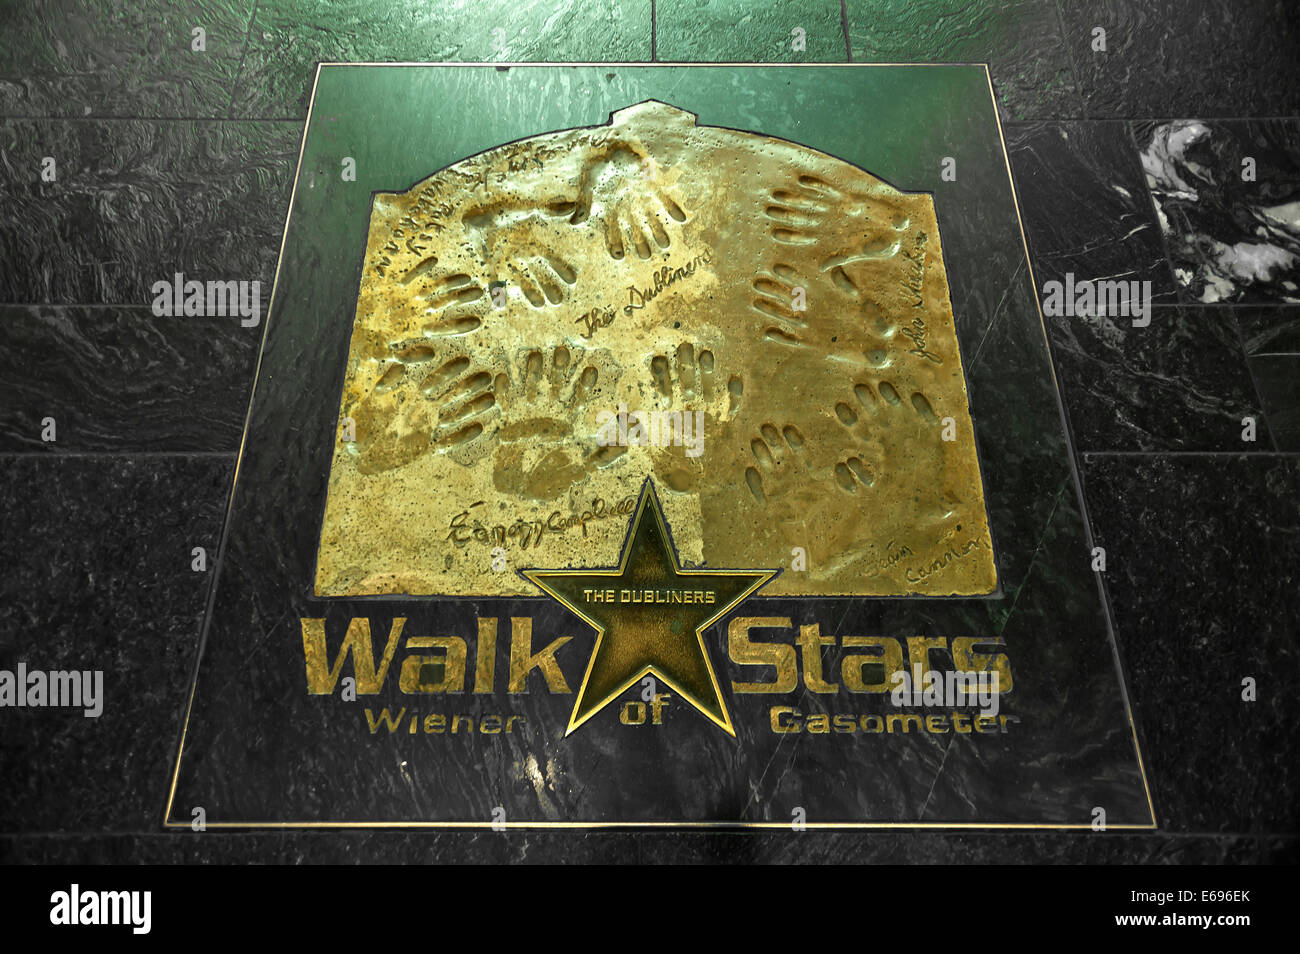 Walk of Stars, star of the musical group 'The Dubliners' in the former gasometer, Guglgasse, Vienna, Vienna - Stock Image